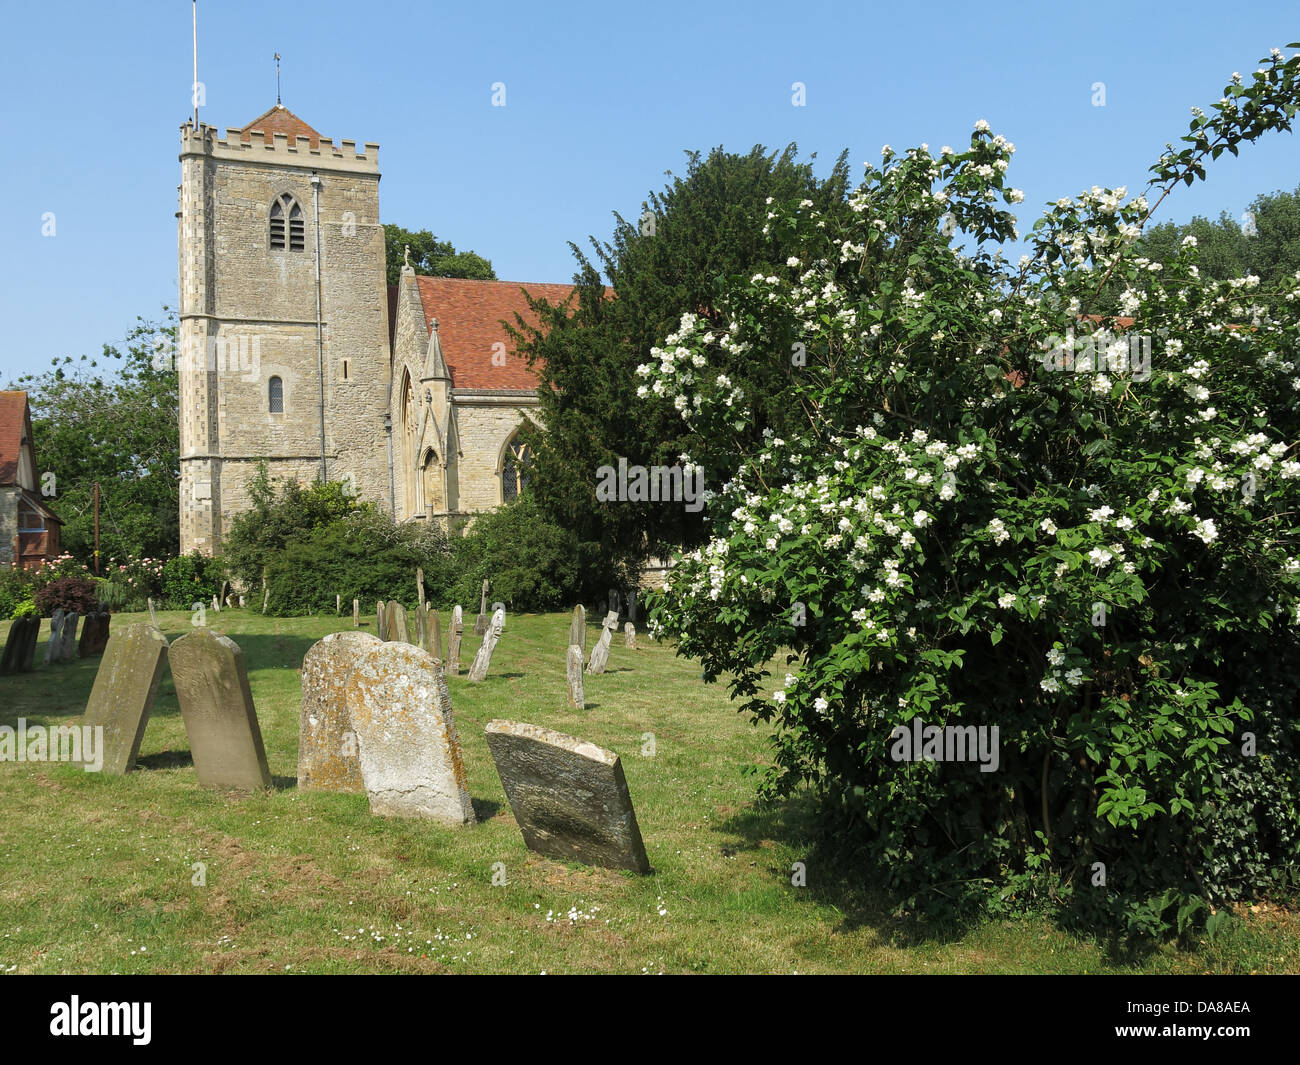 Beautiful,Dorchester,On,Thames,building,interior,of,St,Peter,&,St,Paul,HDR,oxen,oxford,oxfordshire,ancient,monument,exterior,with,trees,in,bloom,summer,2013,graveyard,cemetary,gravestones,graves,stones,Gotonysmith monuments NT,Buy Pictures of,Buy Images Of